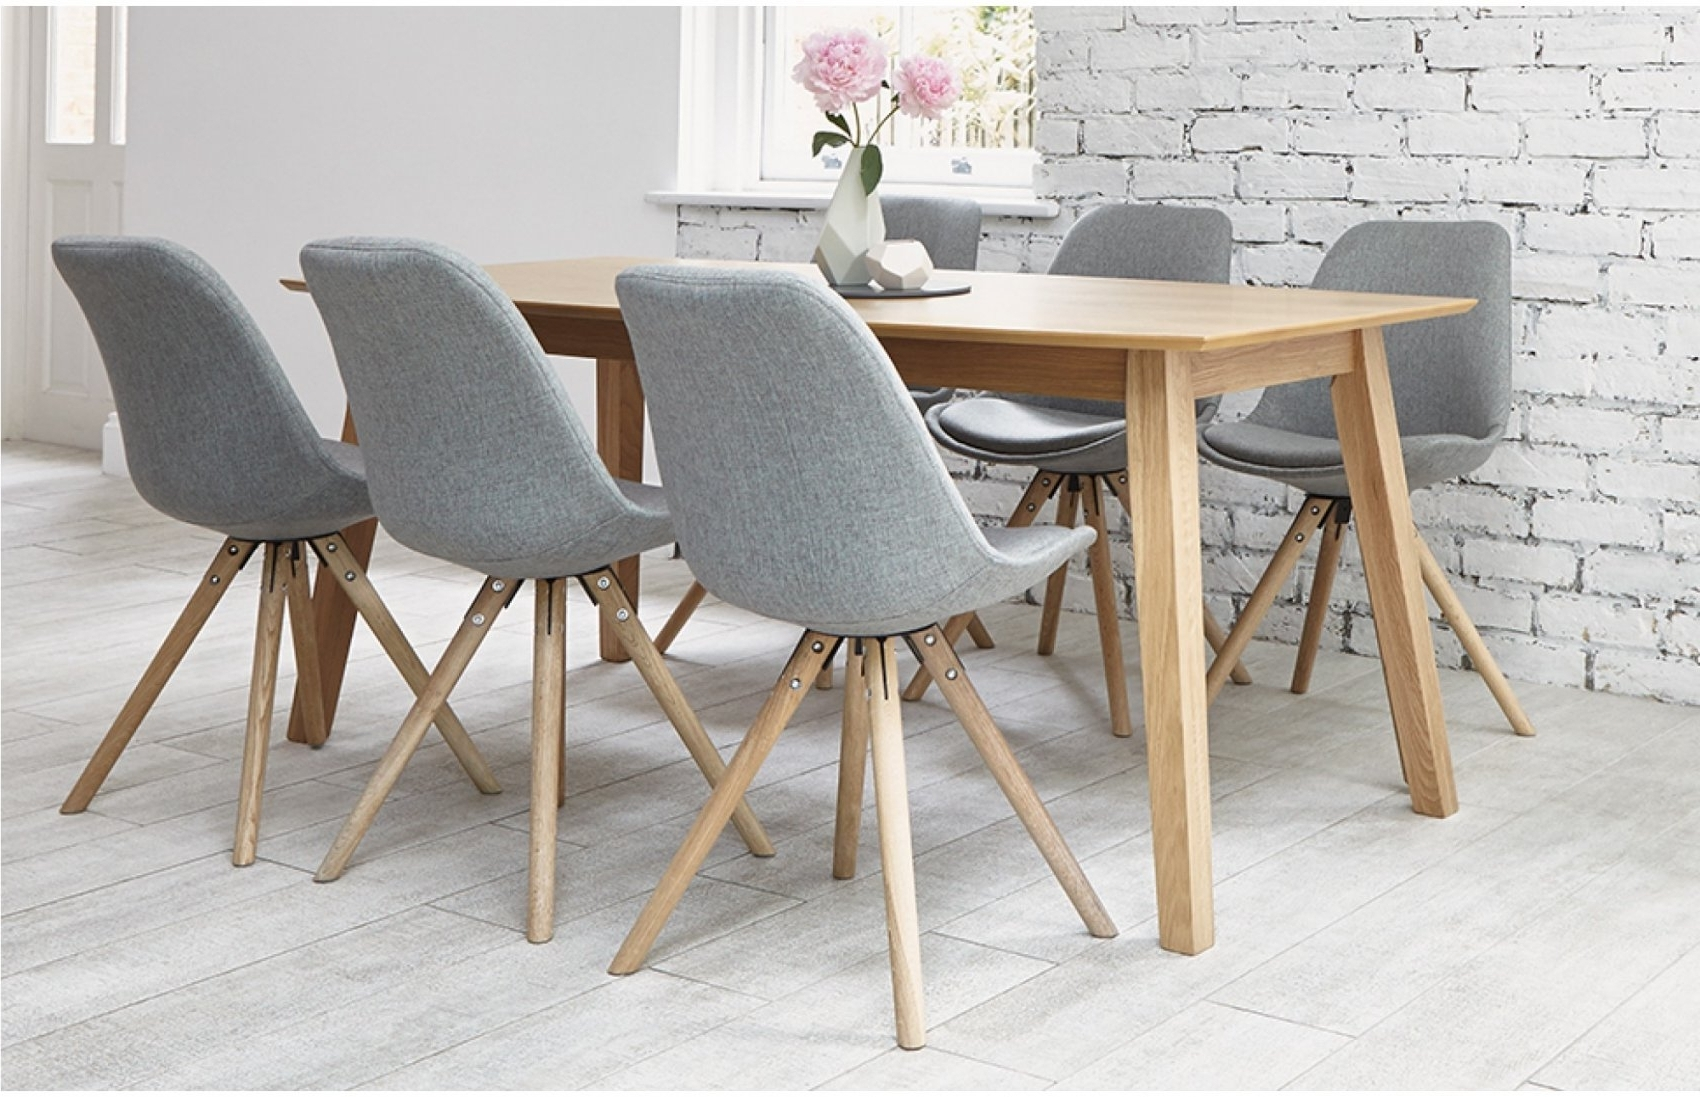 6 Seat Dining Tables Regarding Well Known 6 Seater Dining Sets Grey Home Furniture Out Out Navy Upholstered (Gallery 13 of 25)